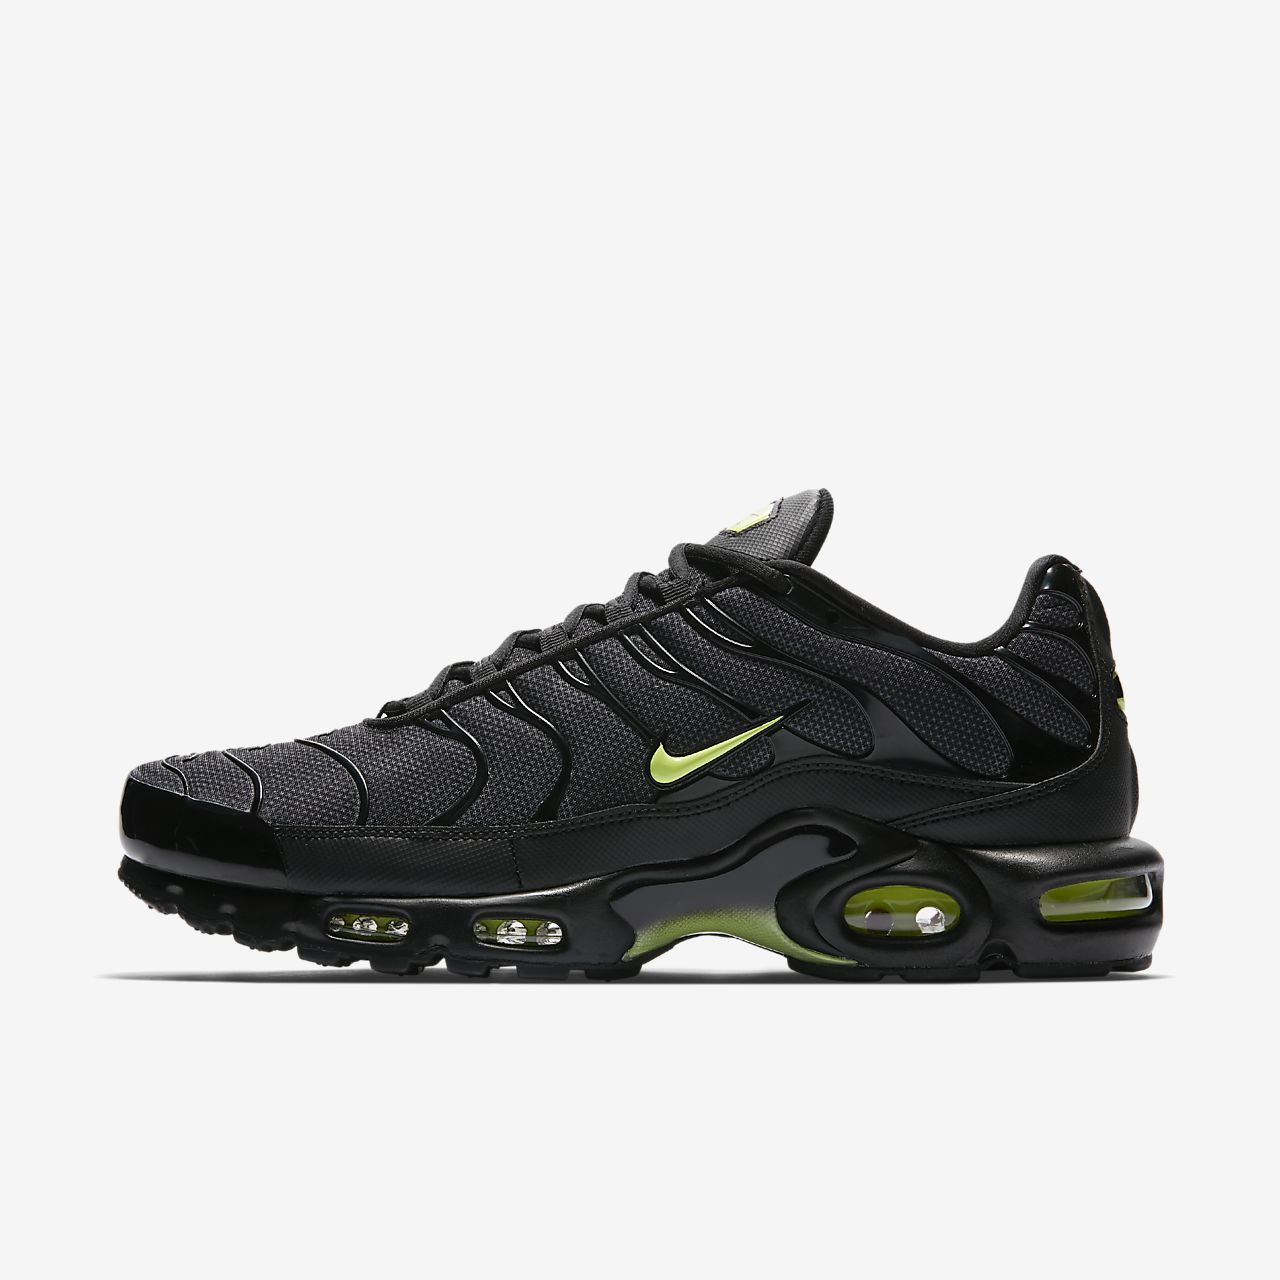 Nike Air Max Plus SE Herrenschuh